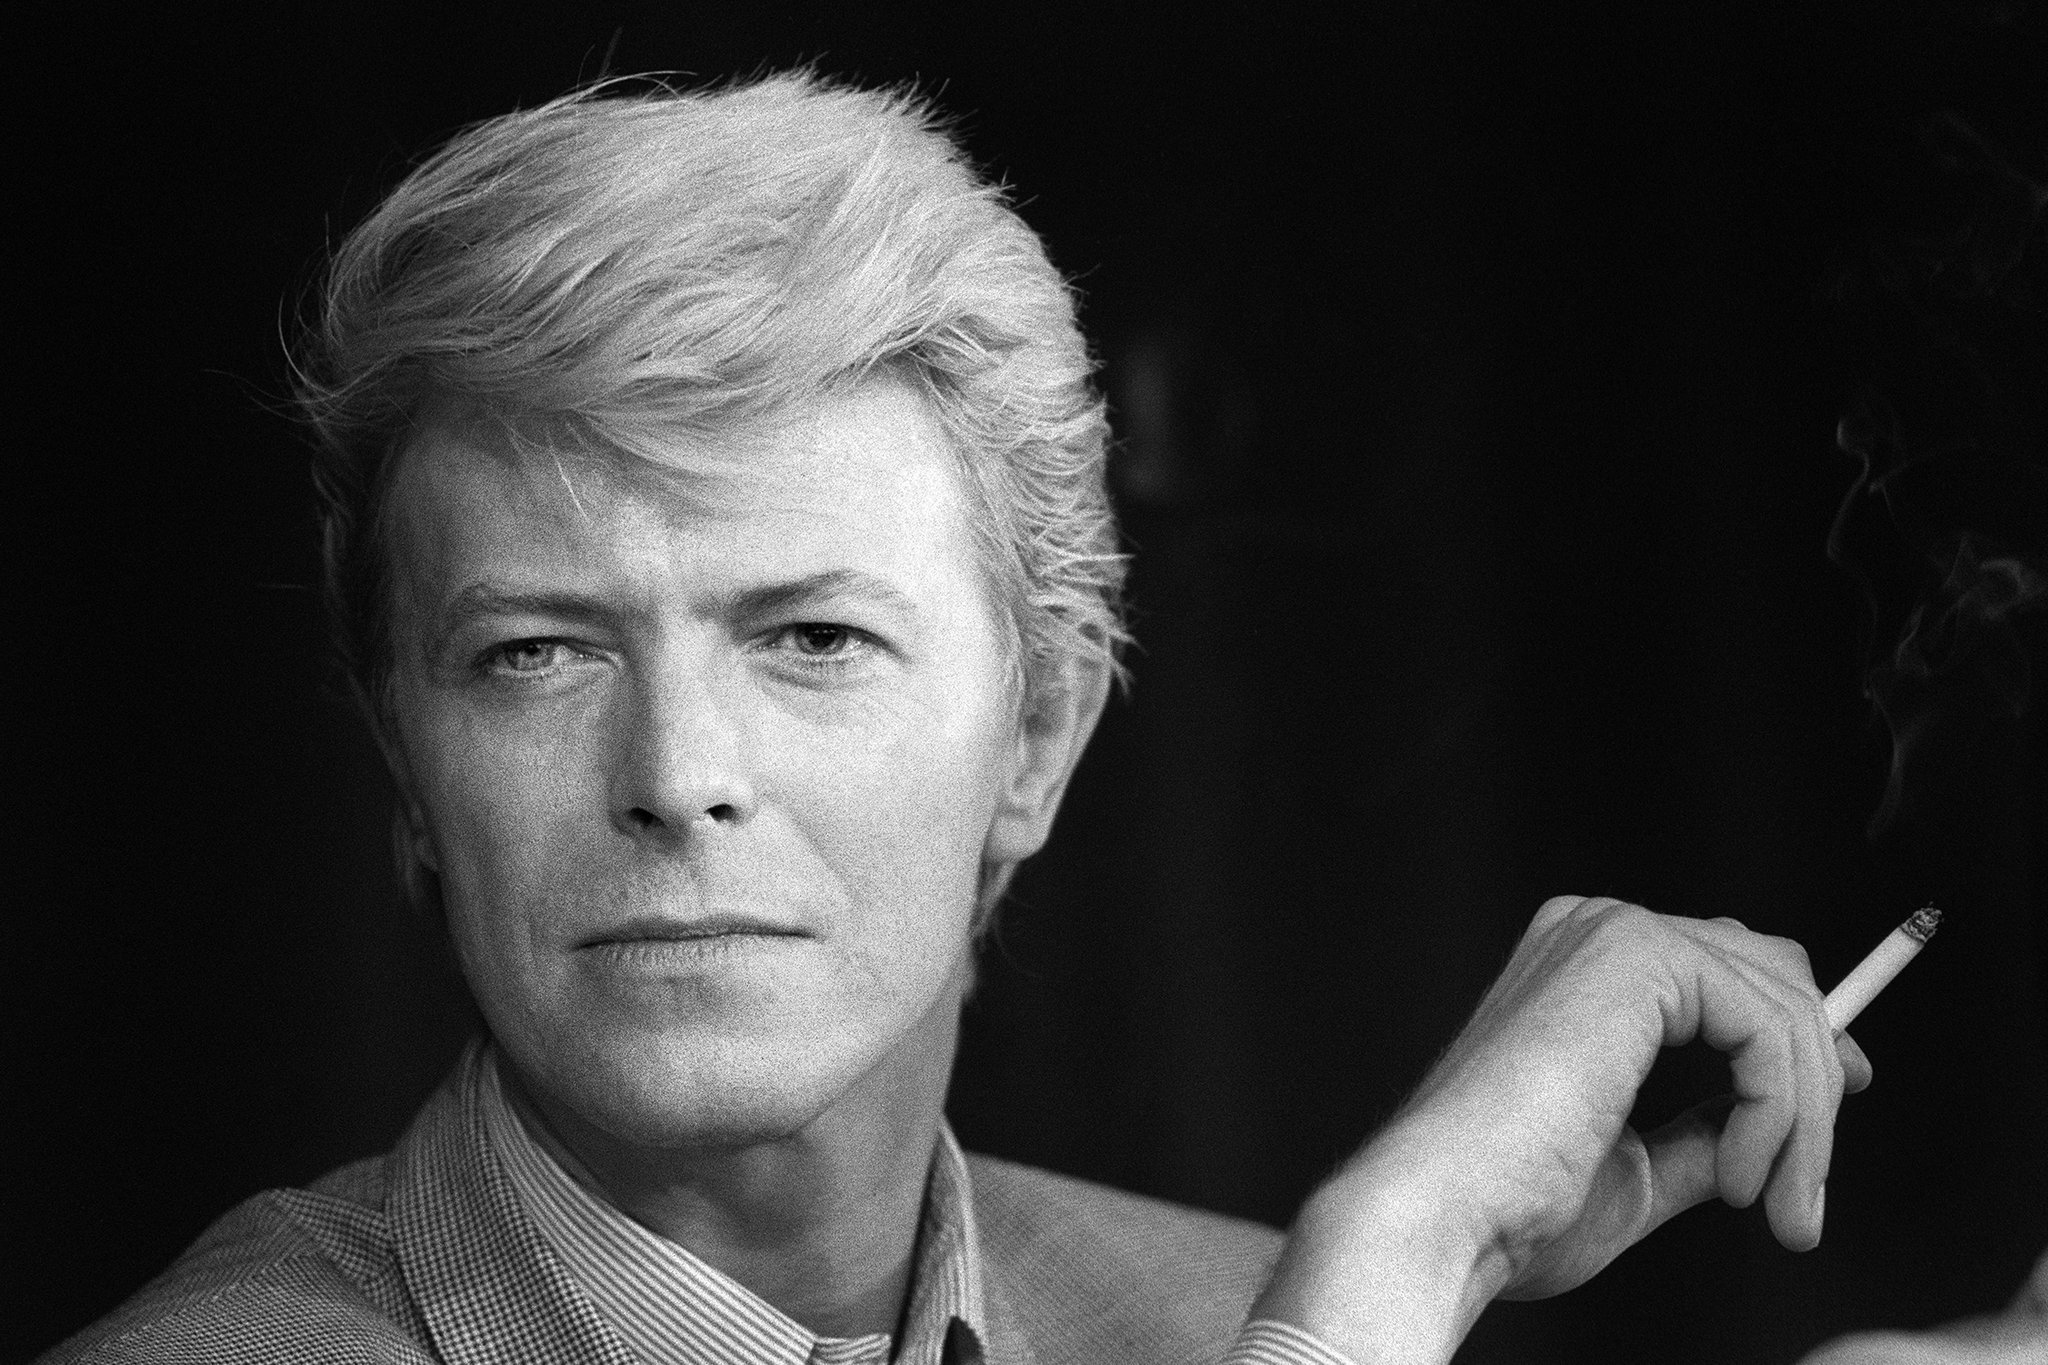 David Bowie widescreen wallpapers